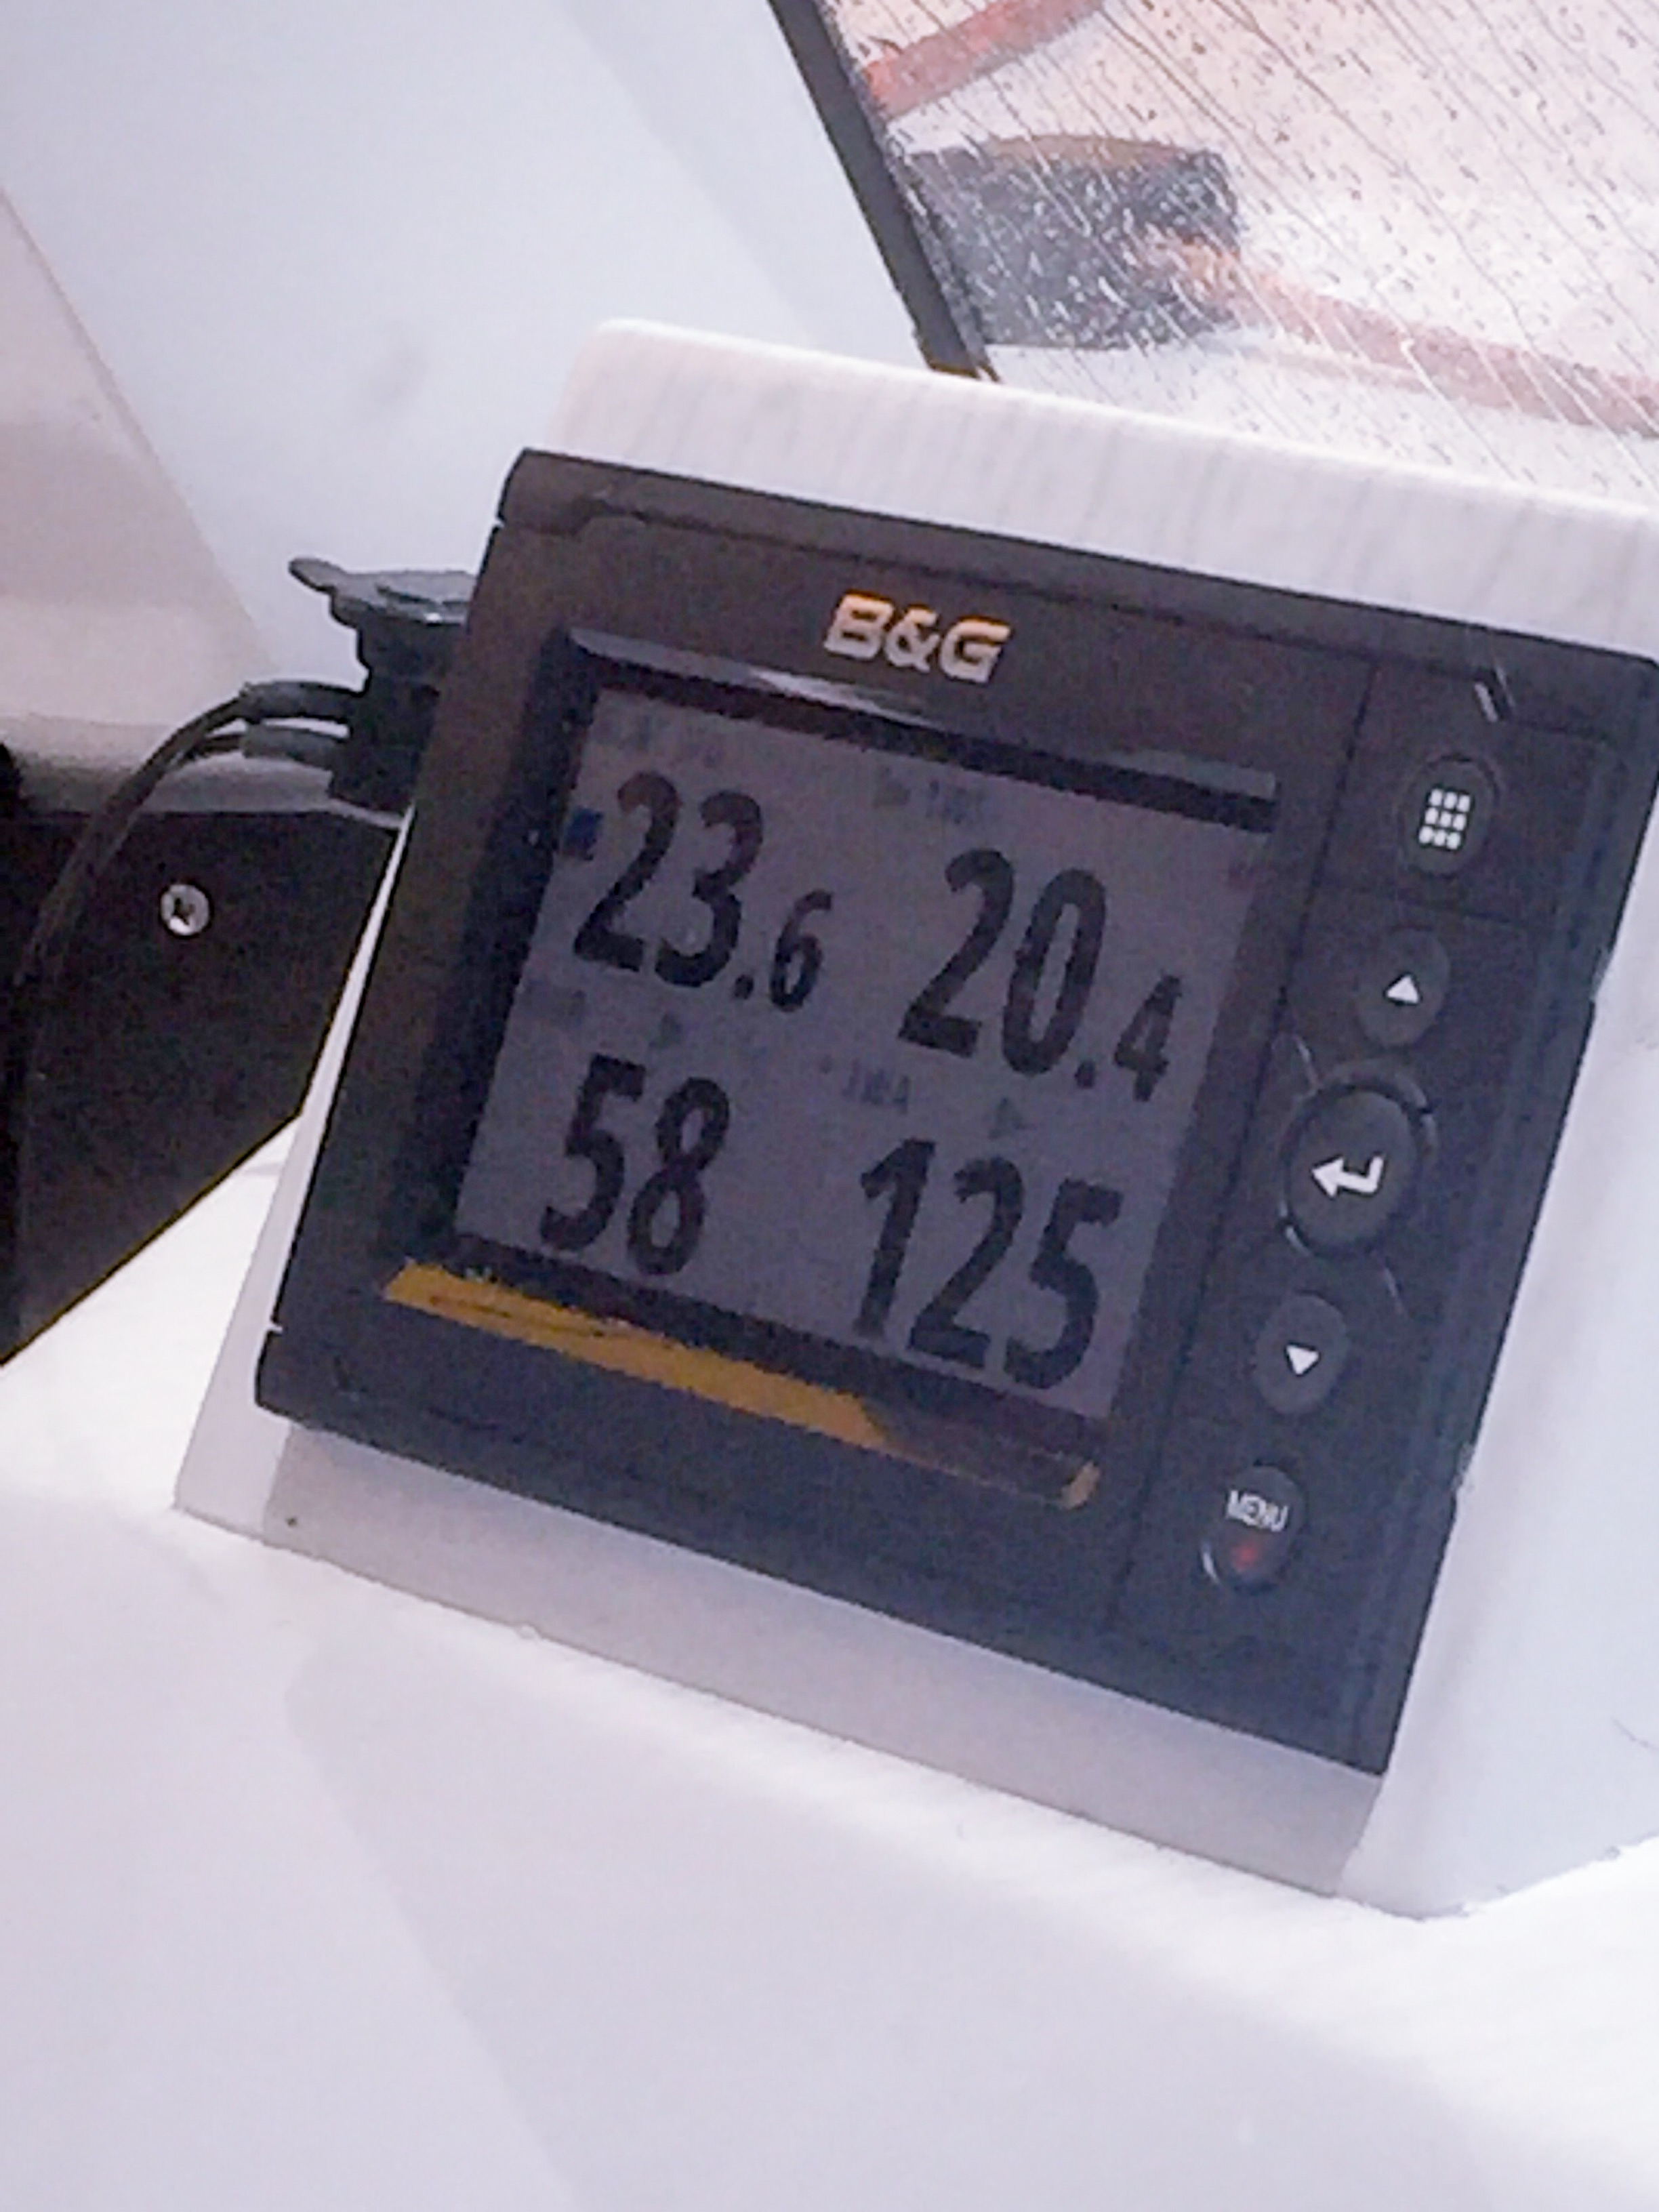 Only in a Gun Boat. Boat speed 23.6 in 20.4 knots of wind! Our top speed was over 24.